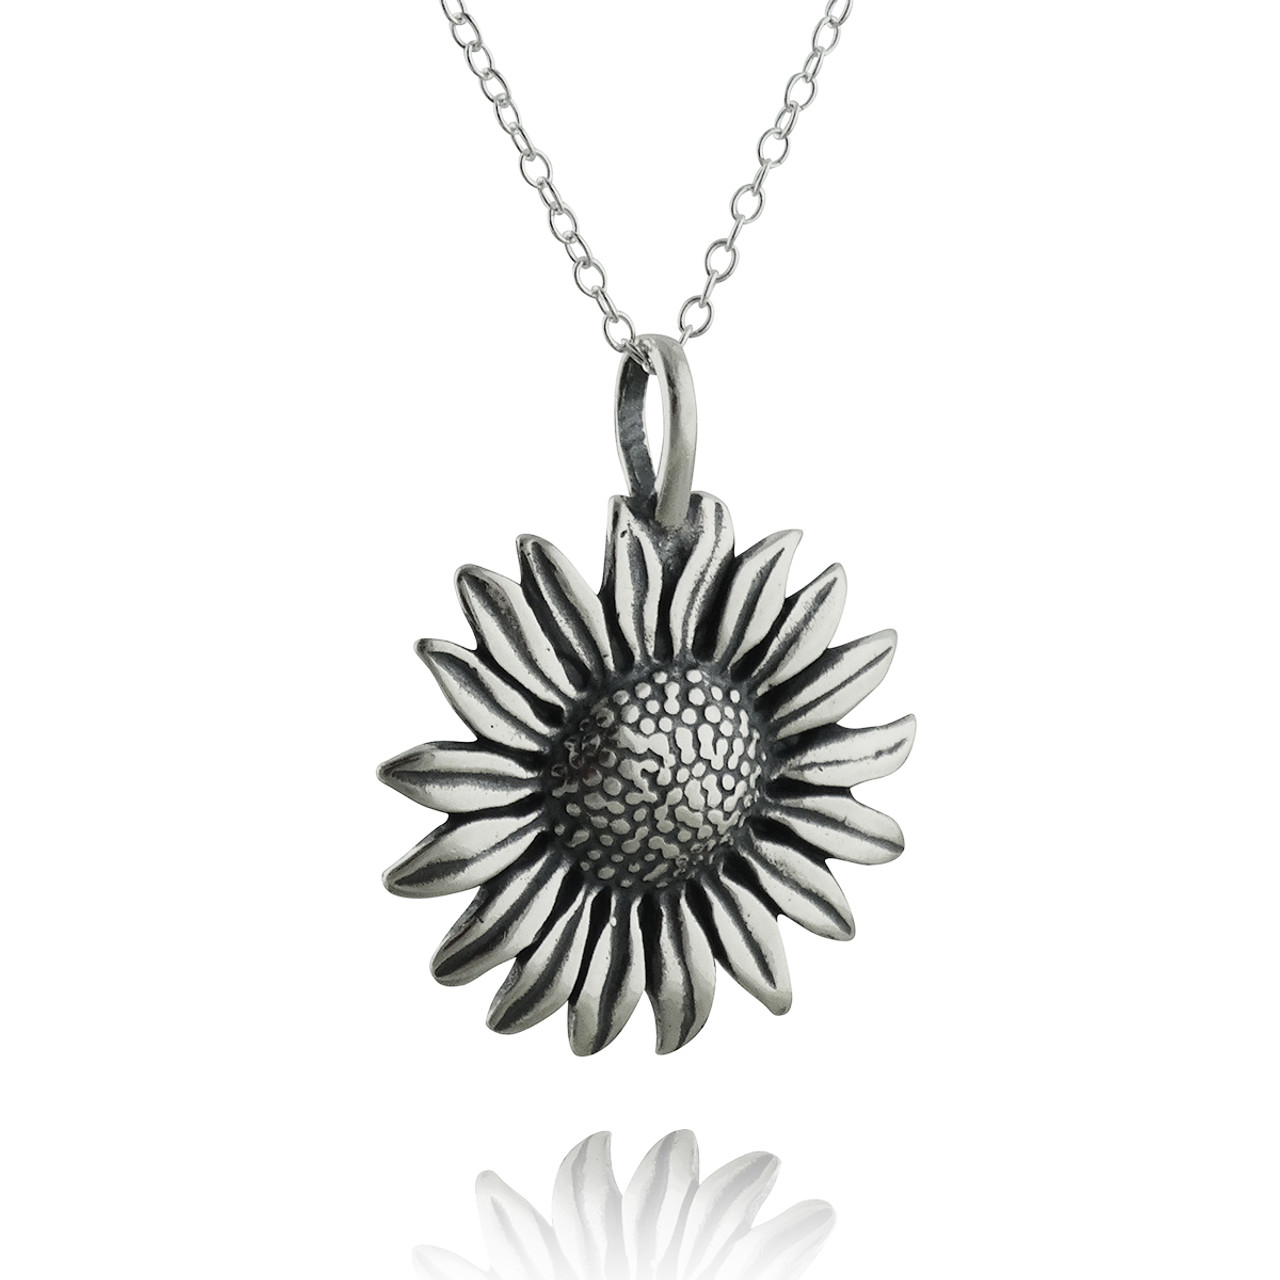 Sunflower pendant necklace sterling silver aloadofball Gallery